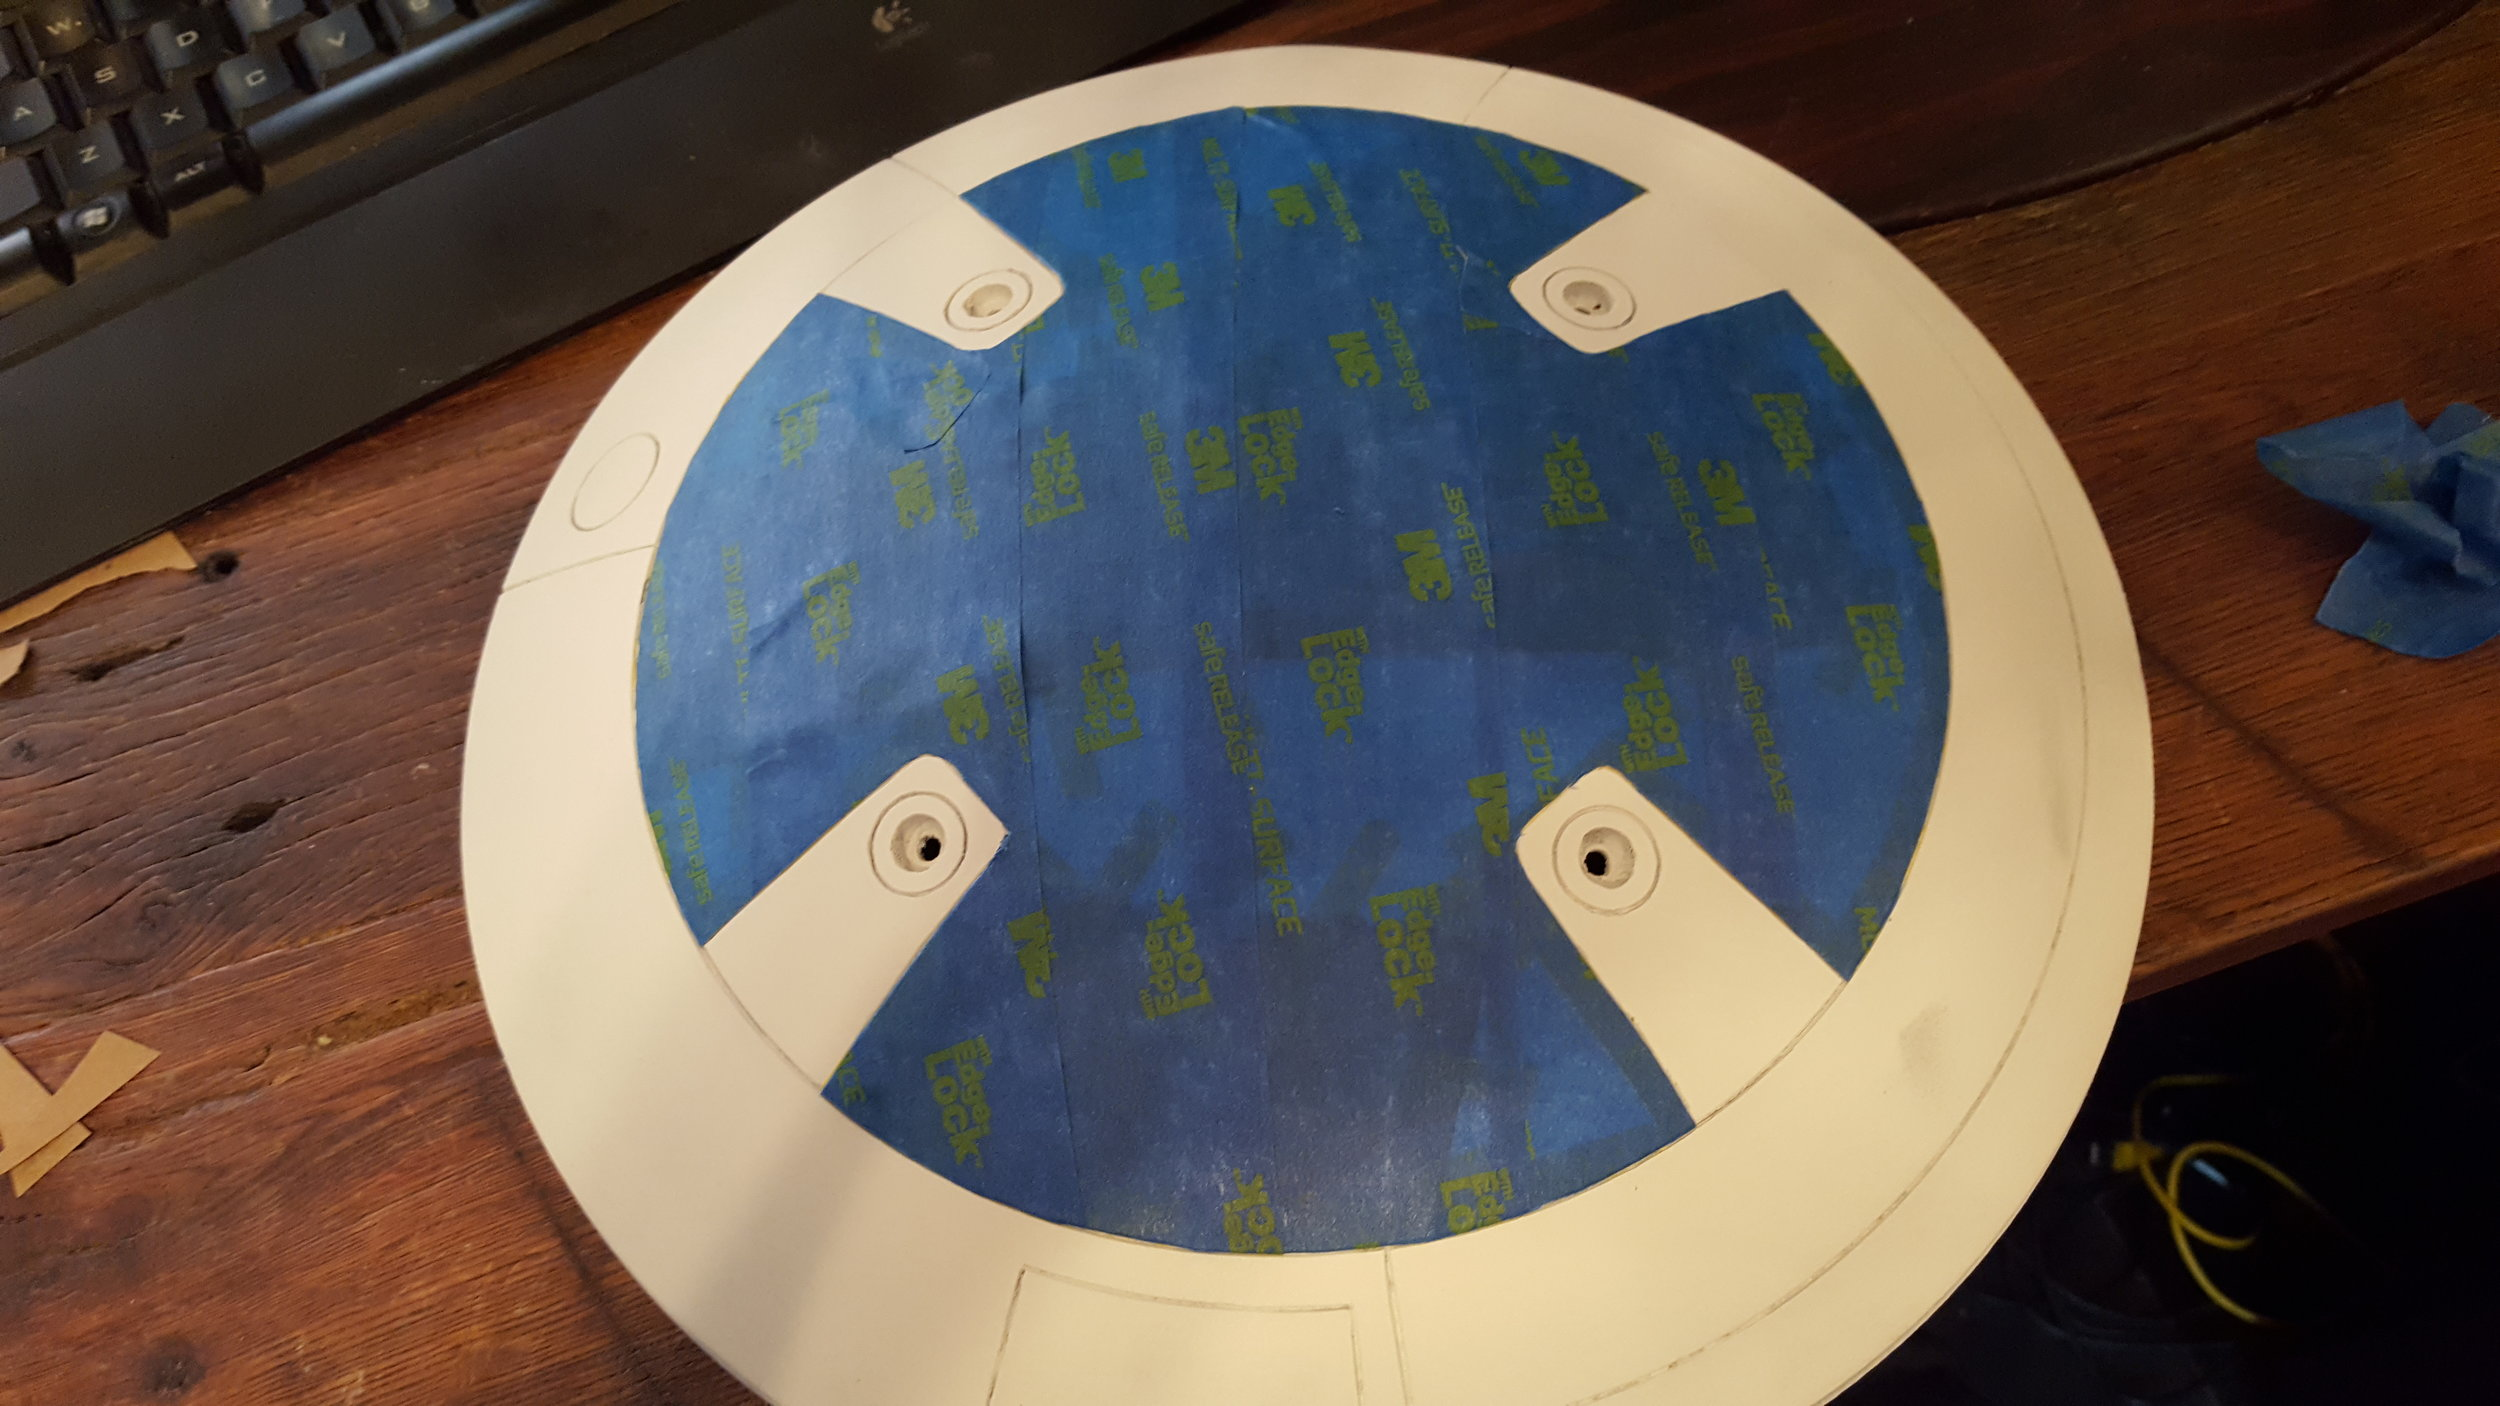 I used the same technique here. Using the Tamiya tape on the details then covering everything with blue tape and cutting it out.